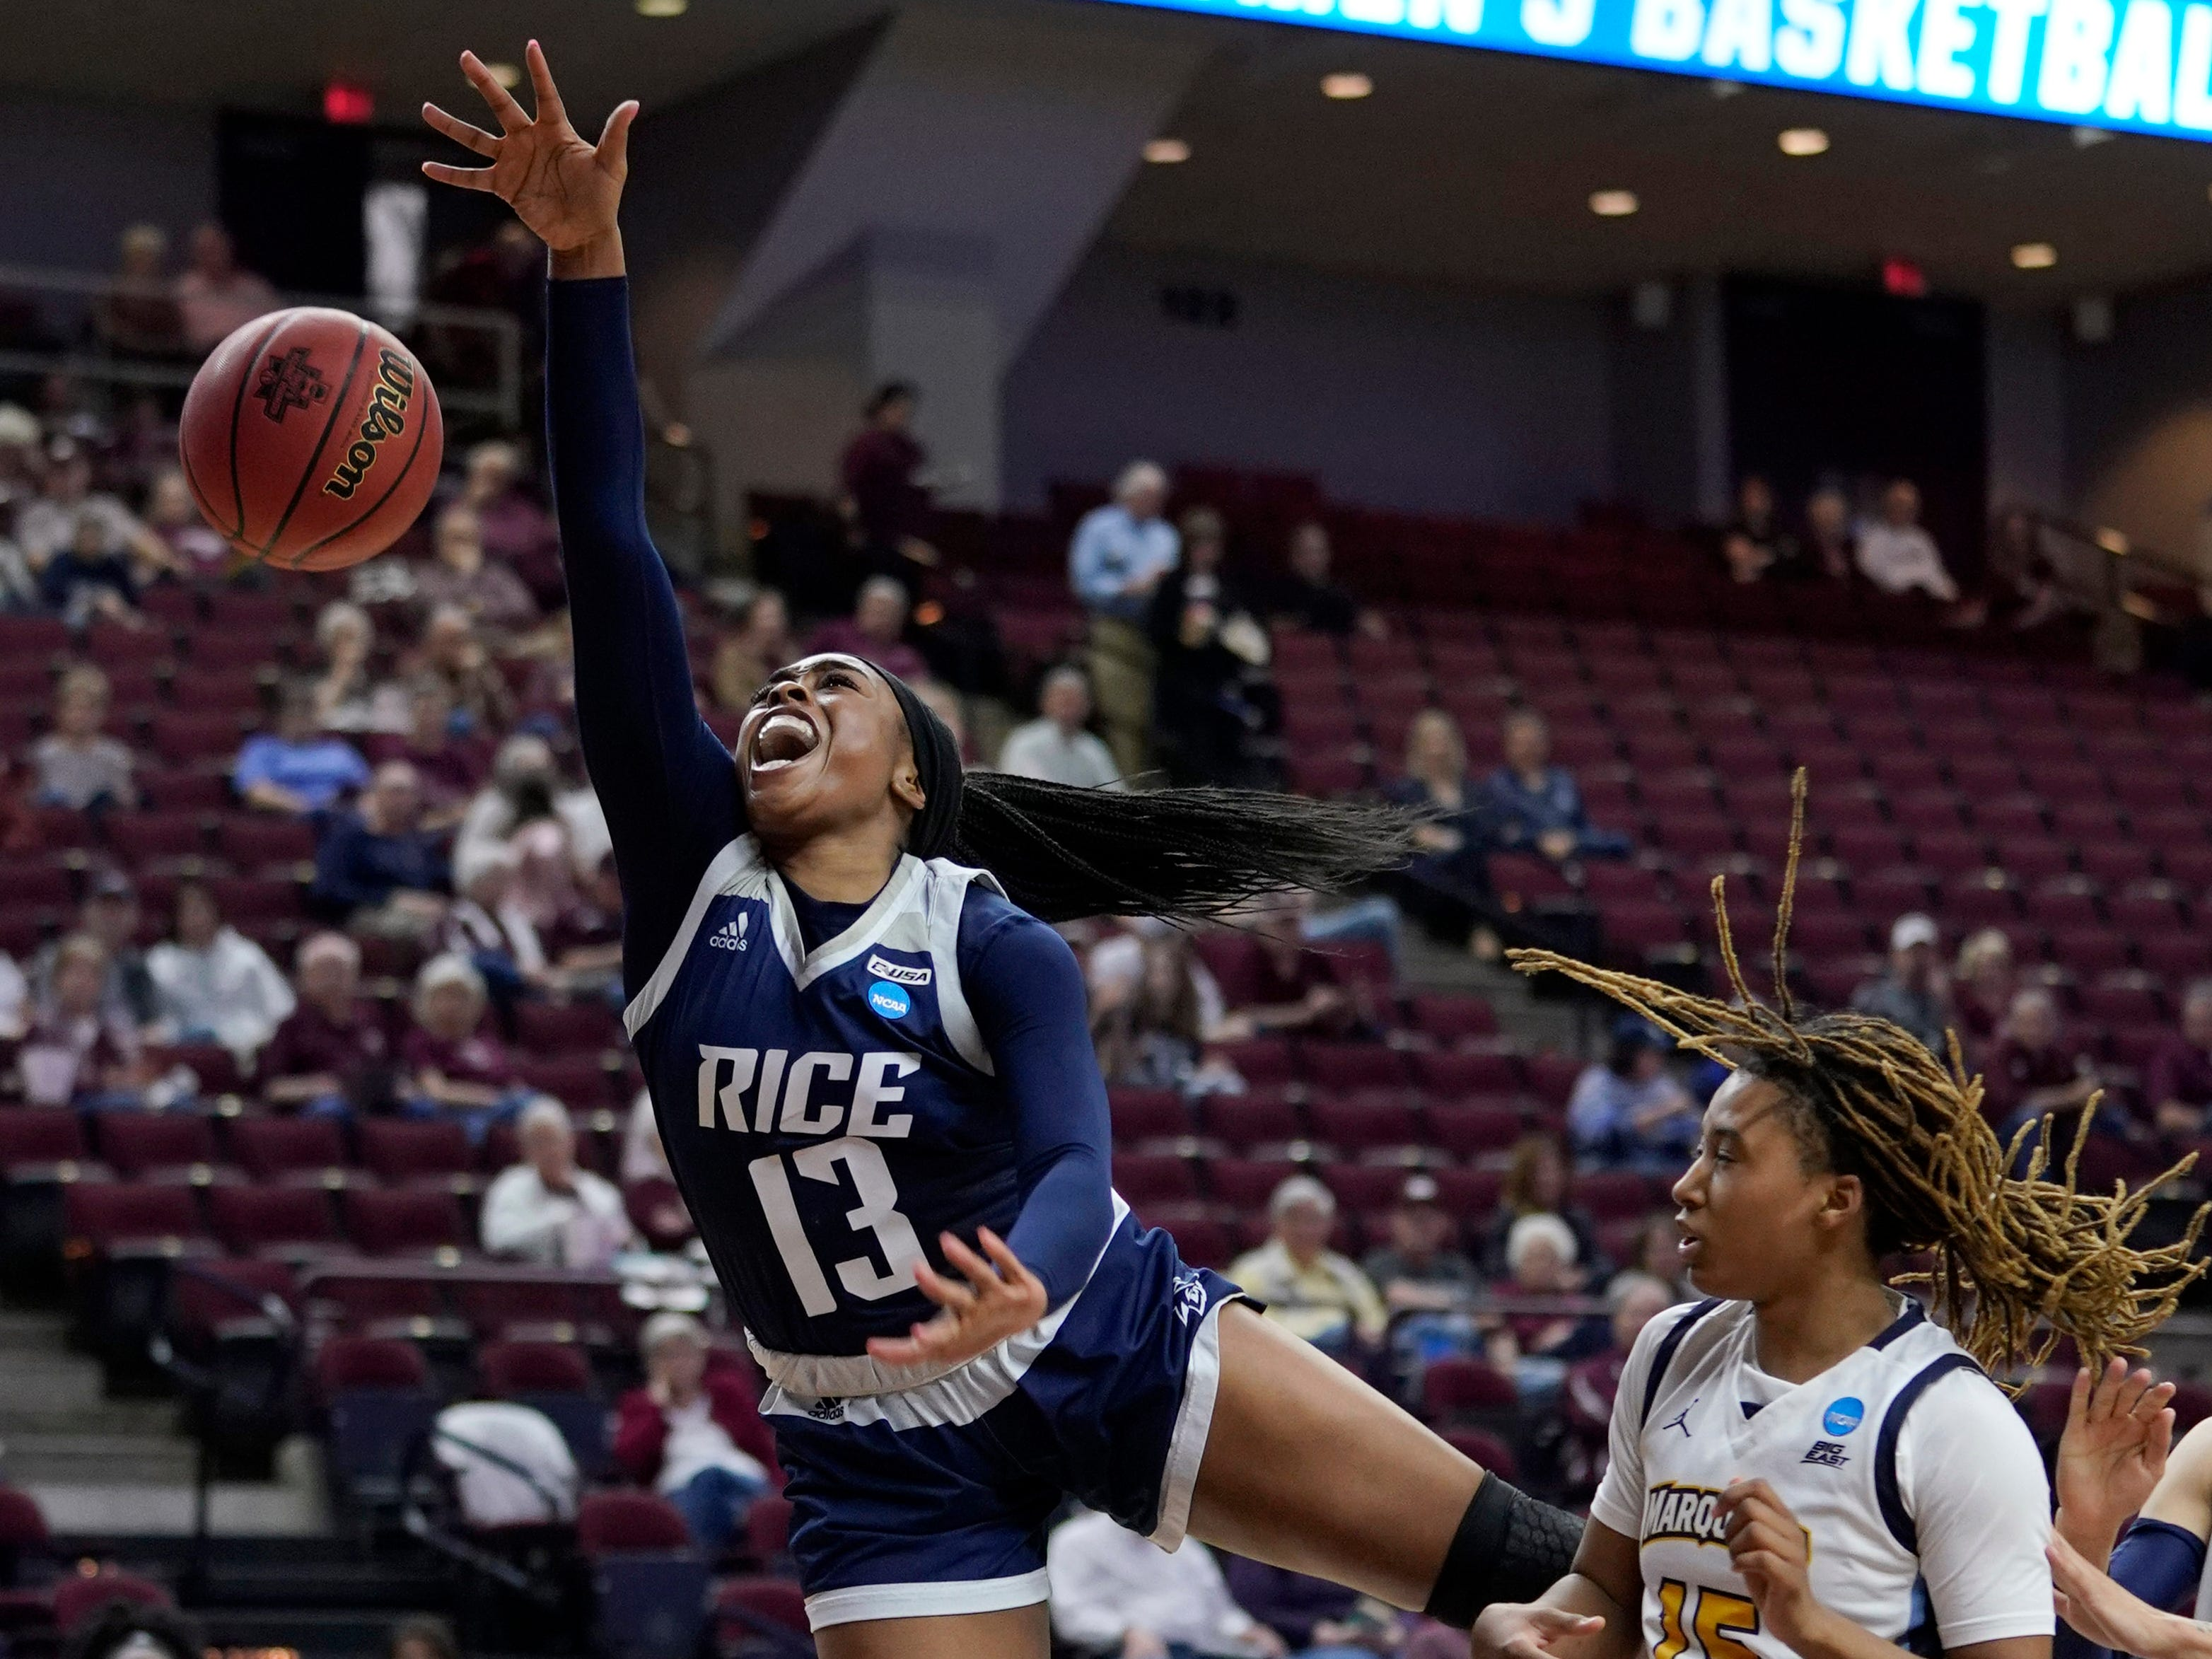 Marquette's Amani Wilborn (right) knocks the ball from Rice's Erica Ogwumike during the second half.